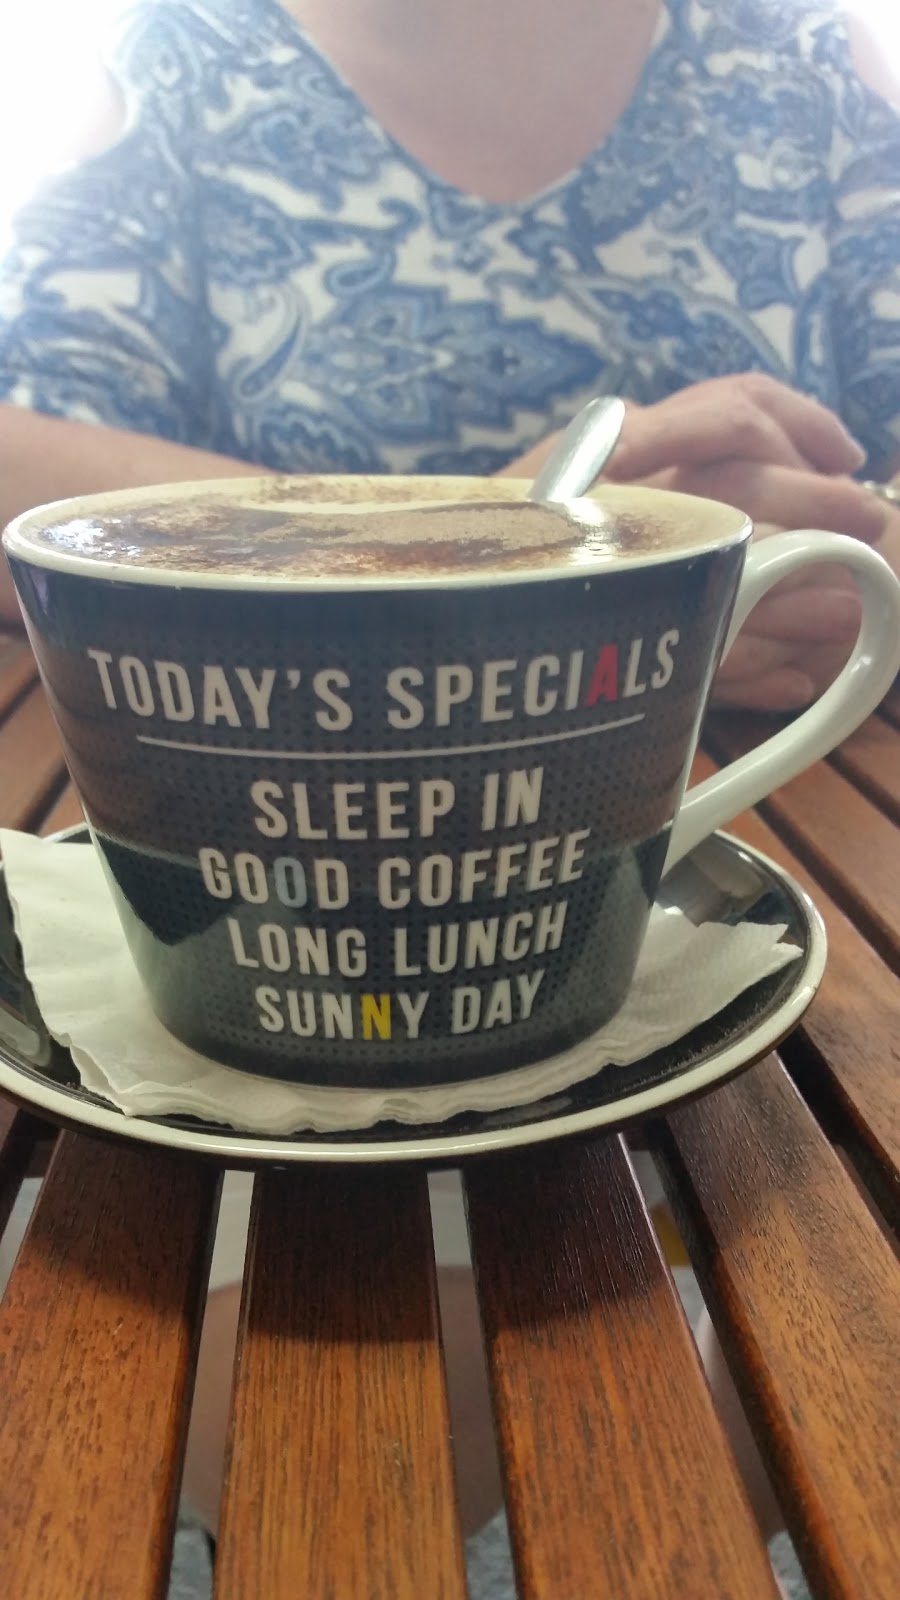 Rustic Chef Cafe | cafe | 124 Queen St, St Marys NSW 2760, Australia | 0411532252 OR +61 411 532 252